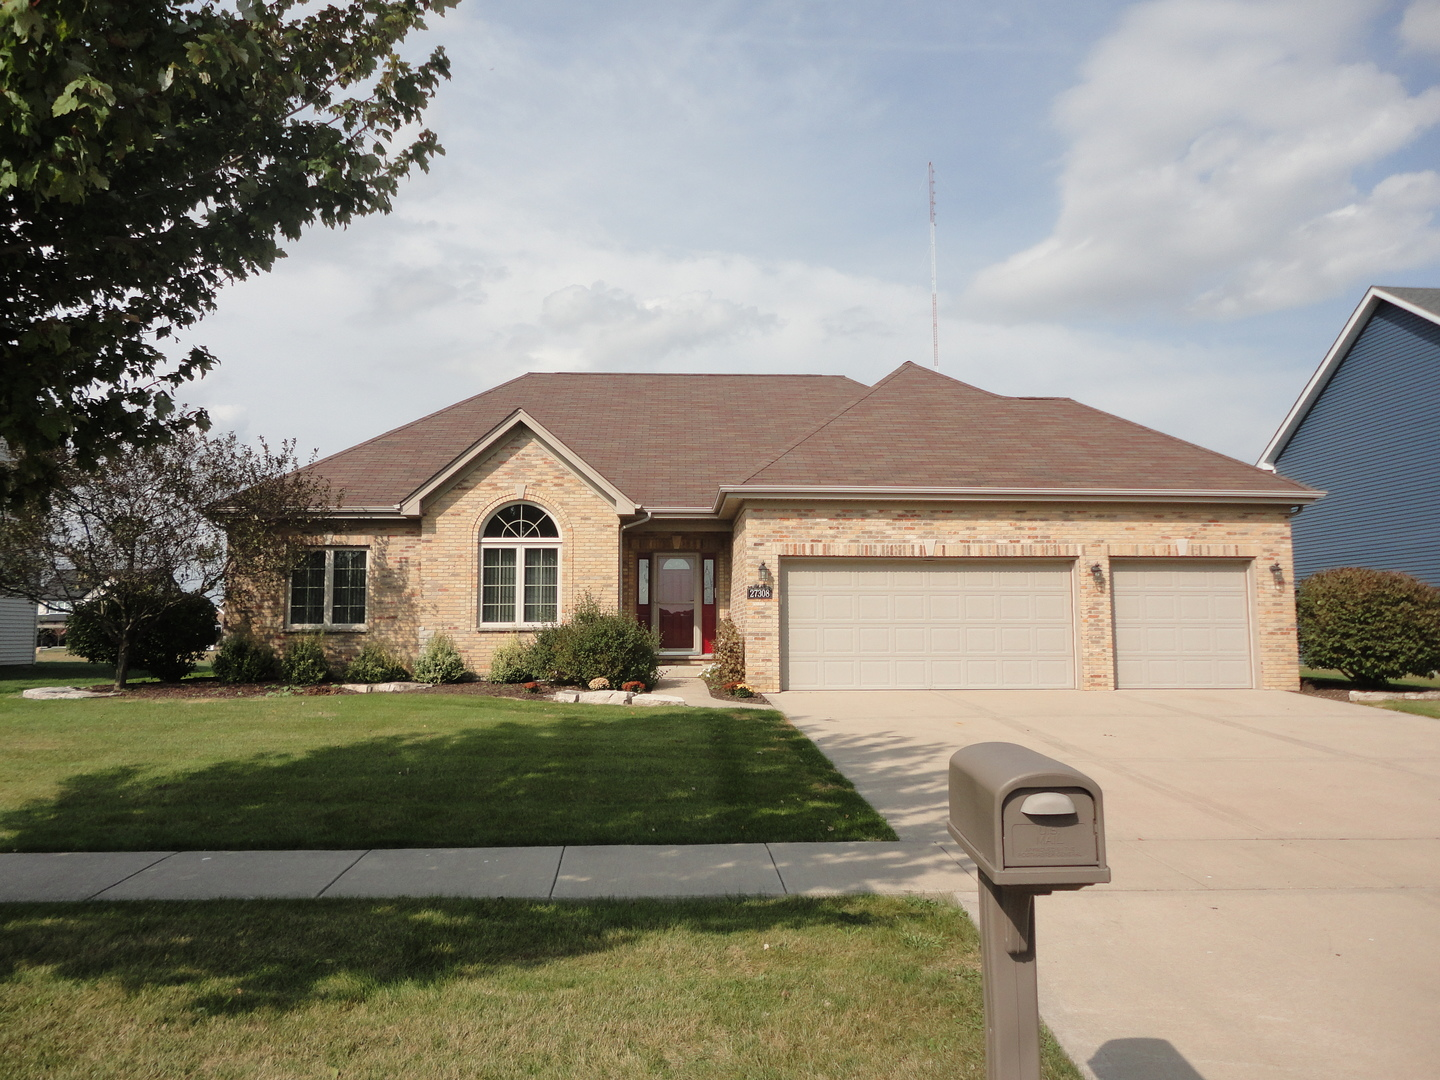 Property for sale at 27308 Deer Hollow Lane, Channahon,  IL 60410